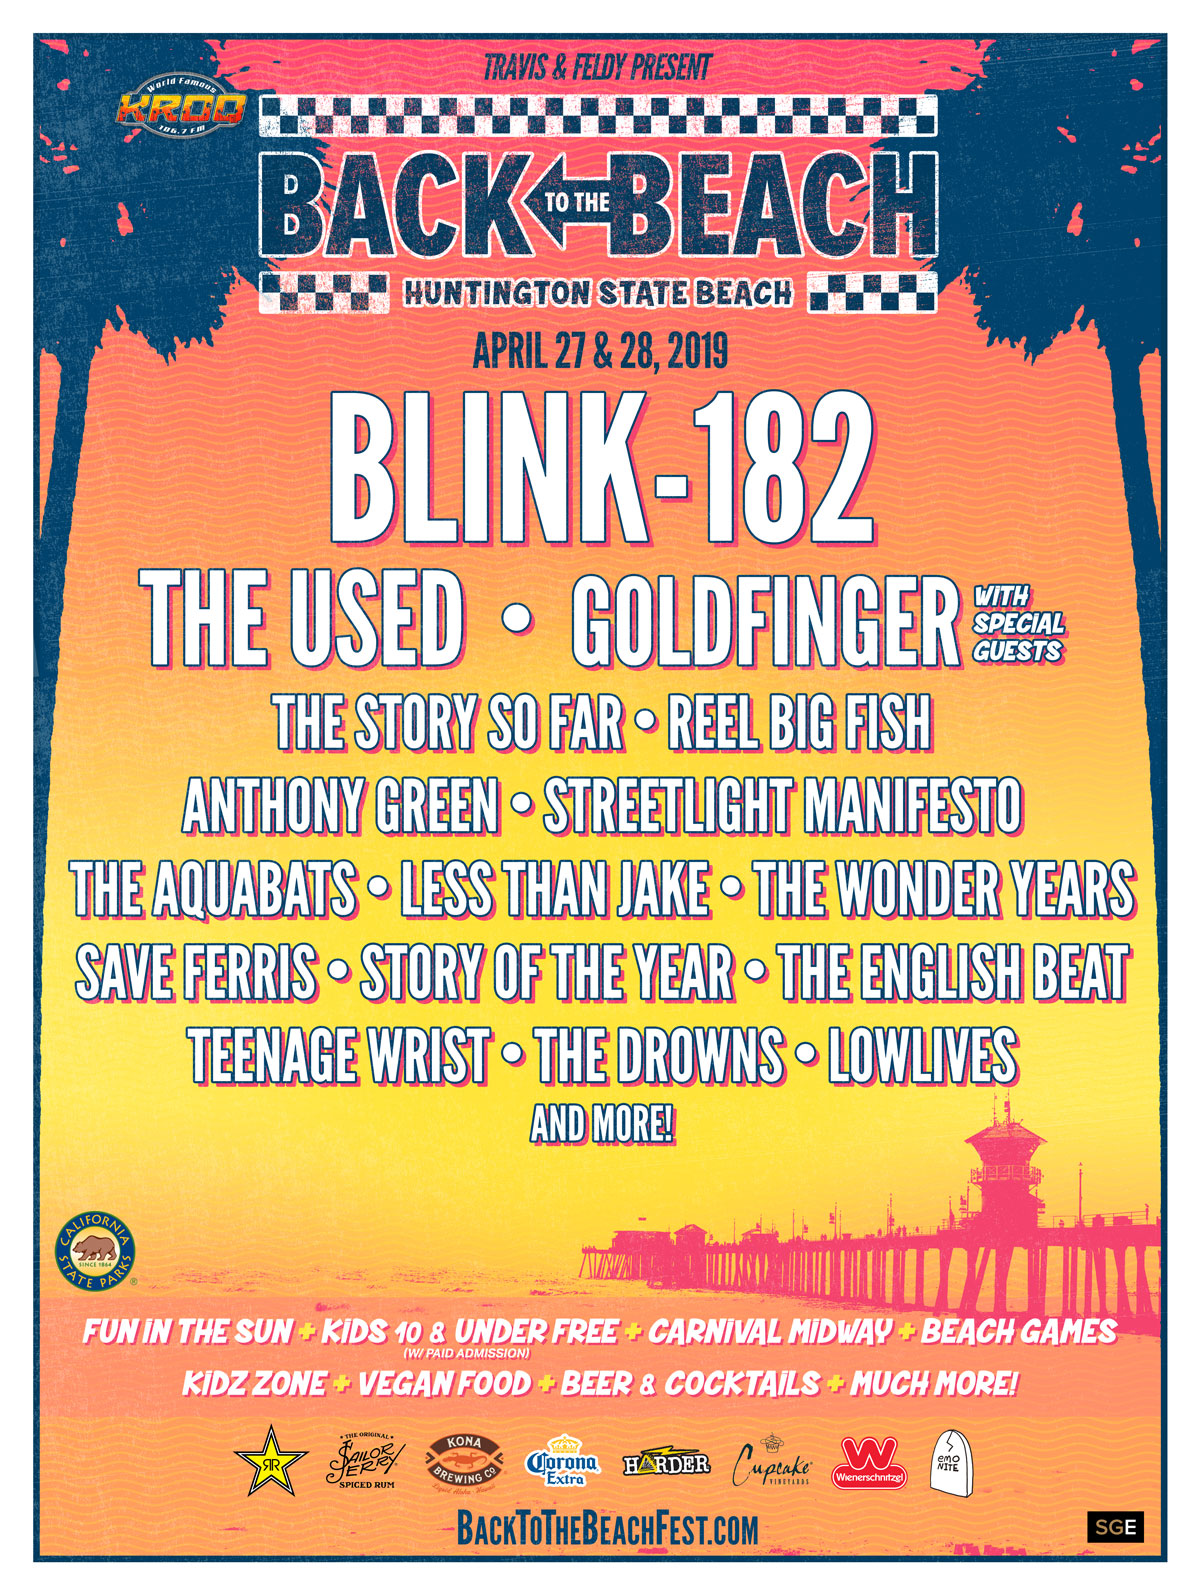 Festival poster, courtesy of Back to the Beach Festival.